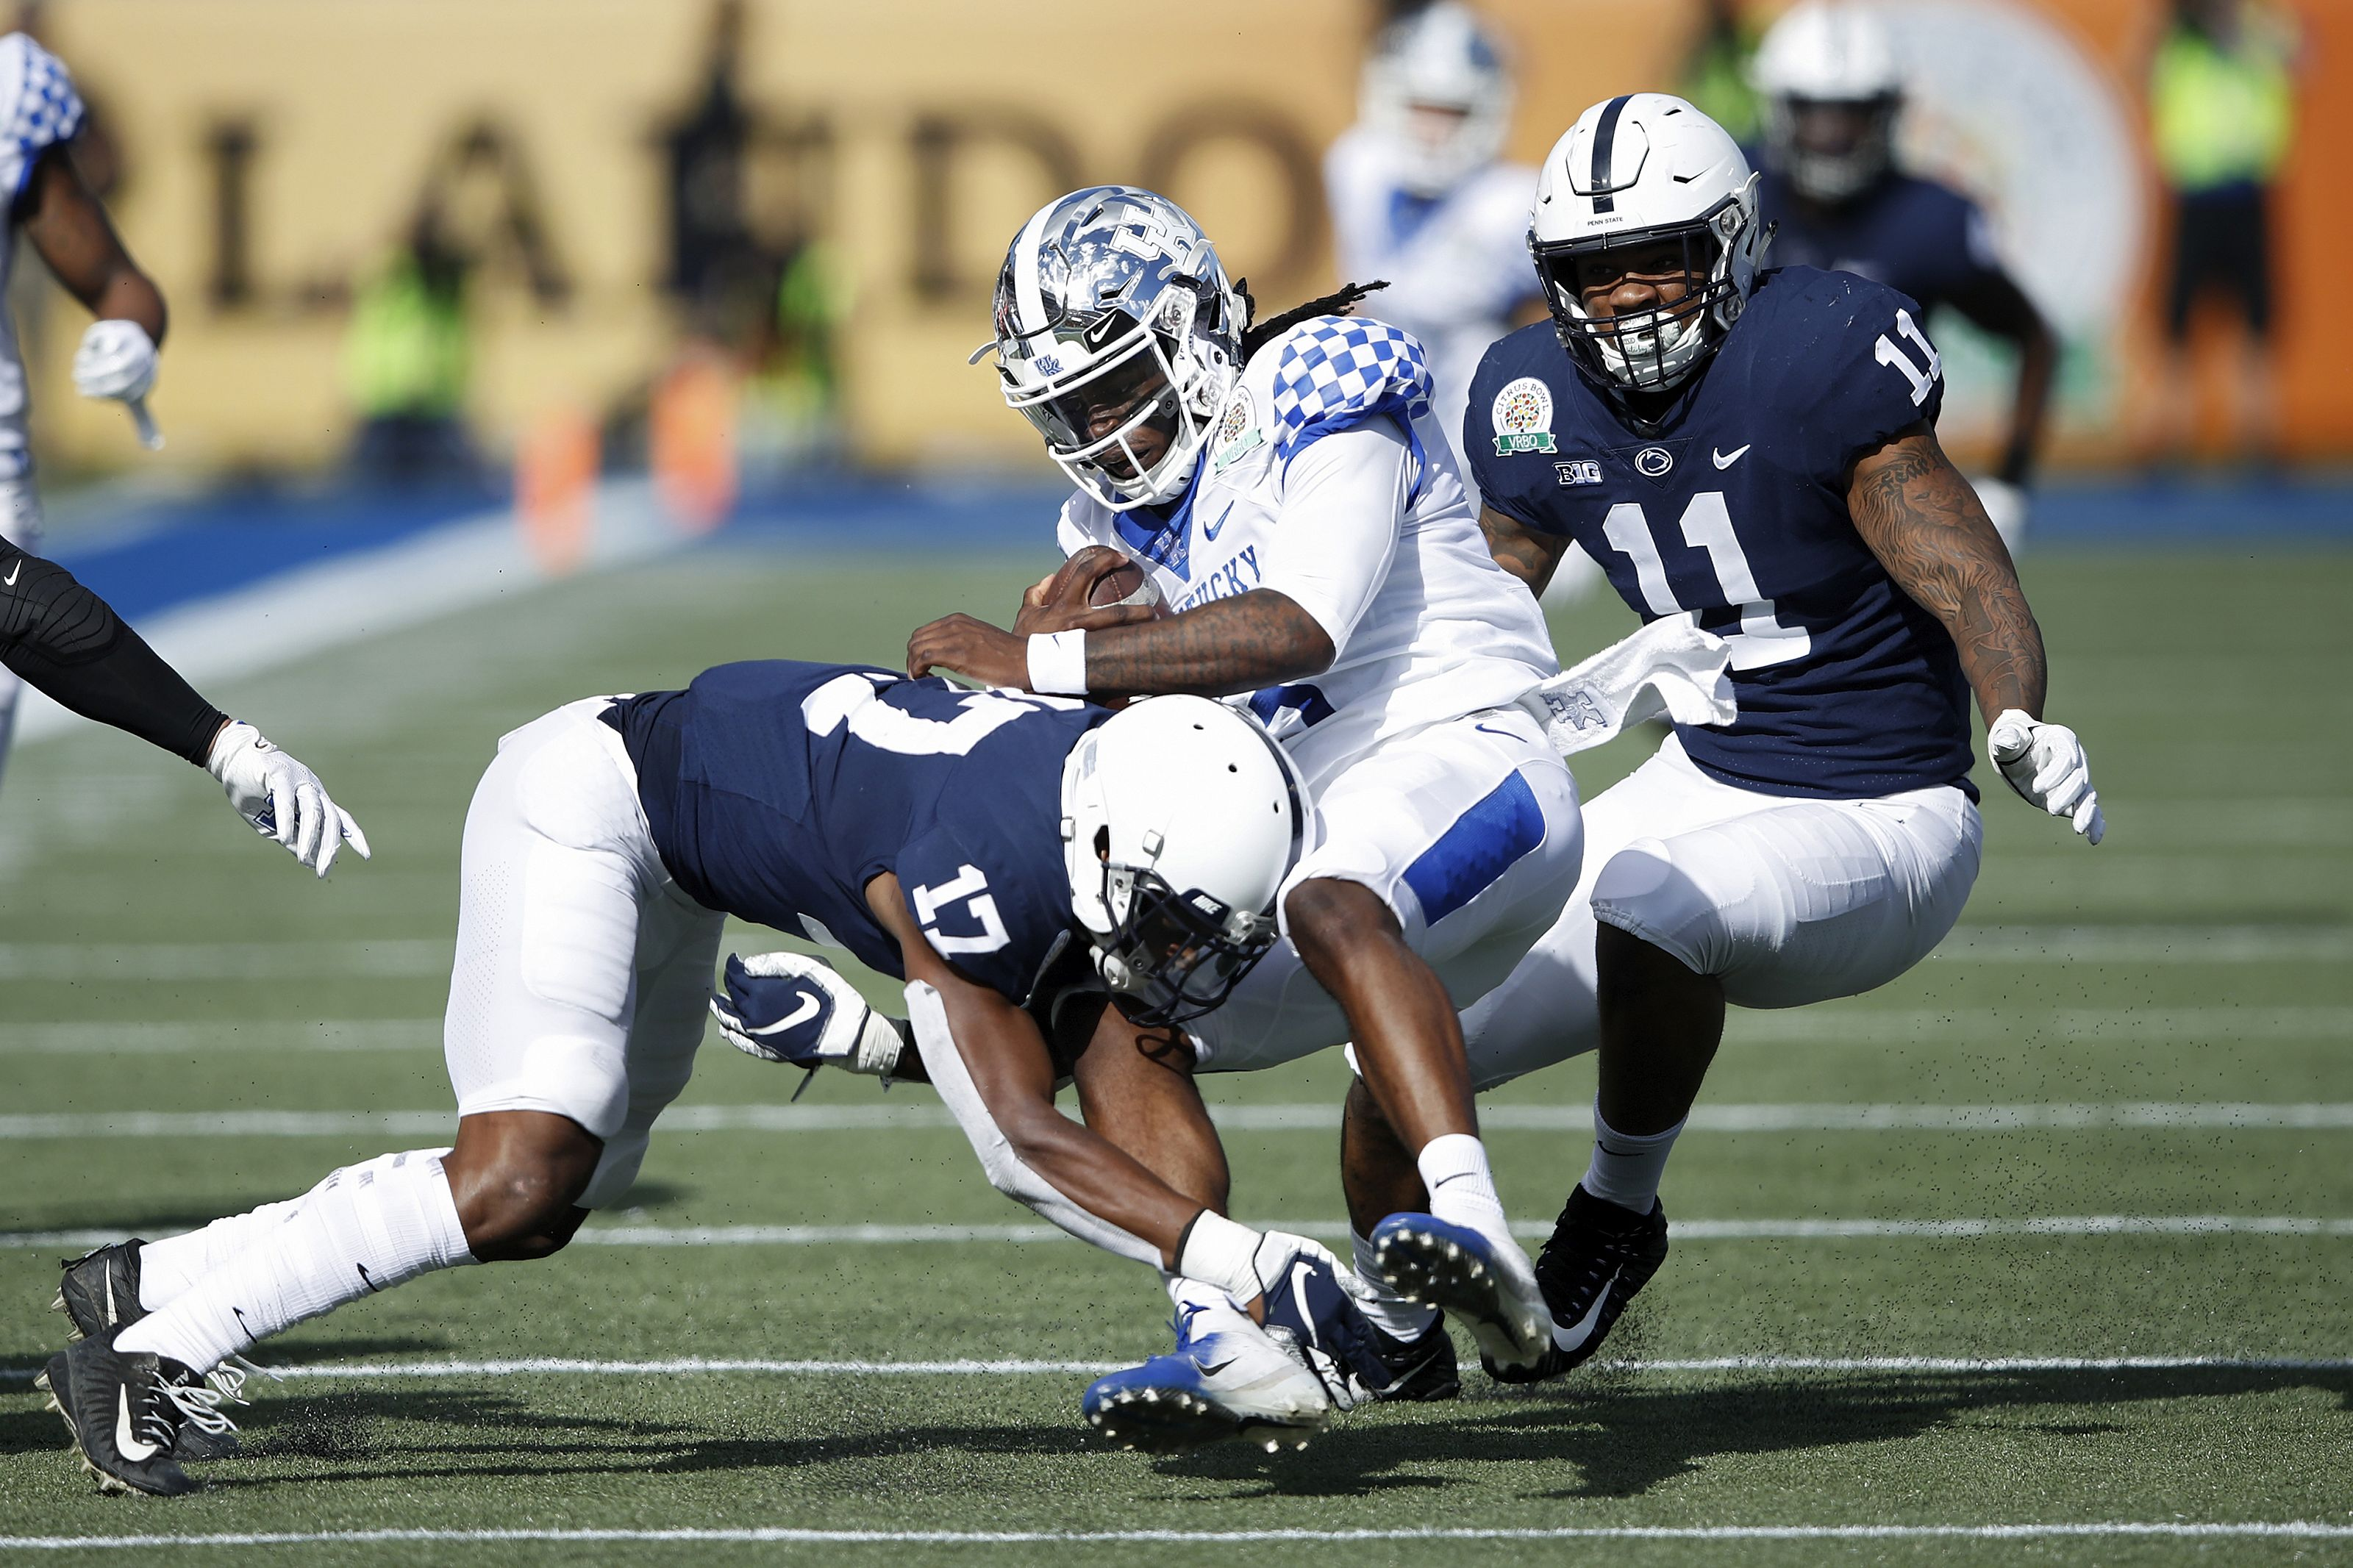 ORLANDO, FL - JANUARY 01: Garrett Taylor #17 and Micah Parsons #11 of the Penn State Nittany Lions tackle Terry Wilson #3 of the Kentucky Wildcats in the first quarter of the VRBO Citrus Bowl at Camping World Stadium on January 1, 2019 in Orlando, Florida. (Photo by Joe Robbins/Getty Images)